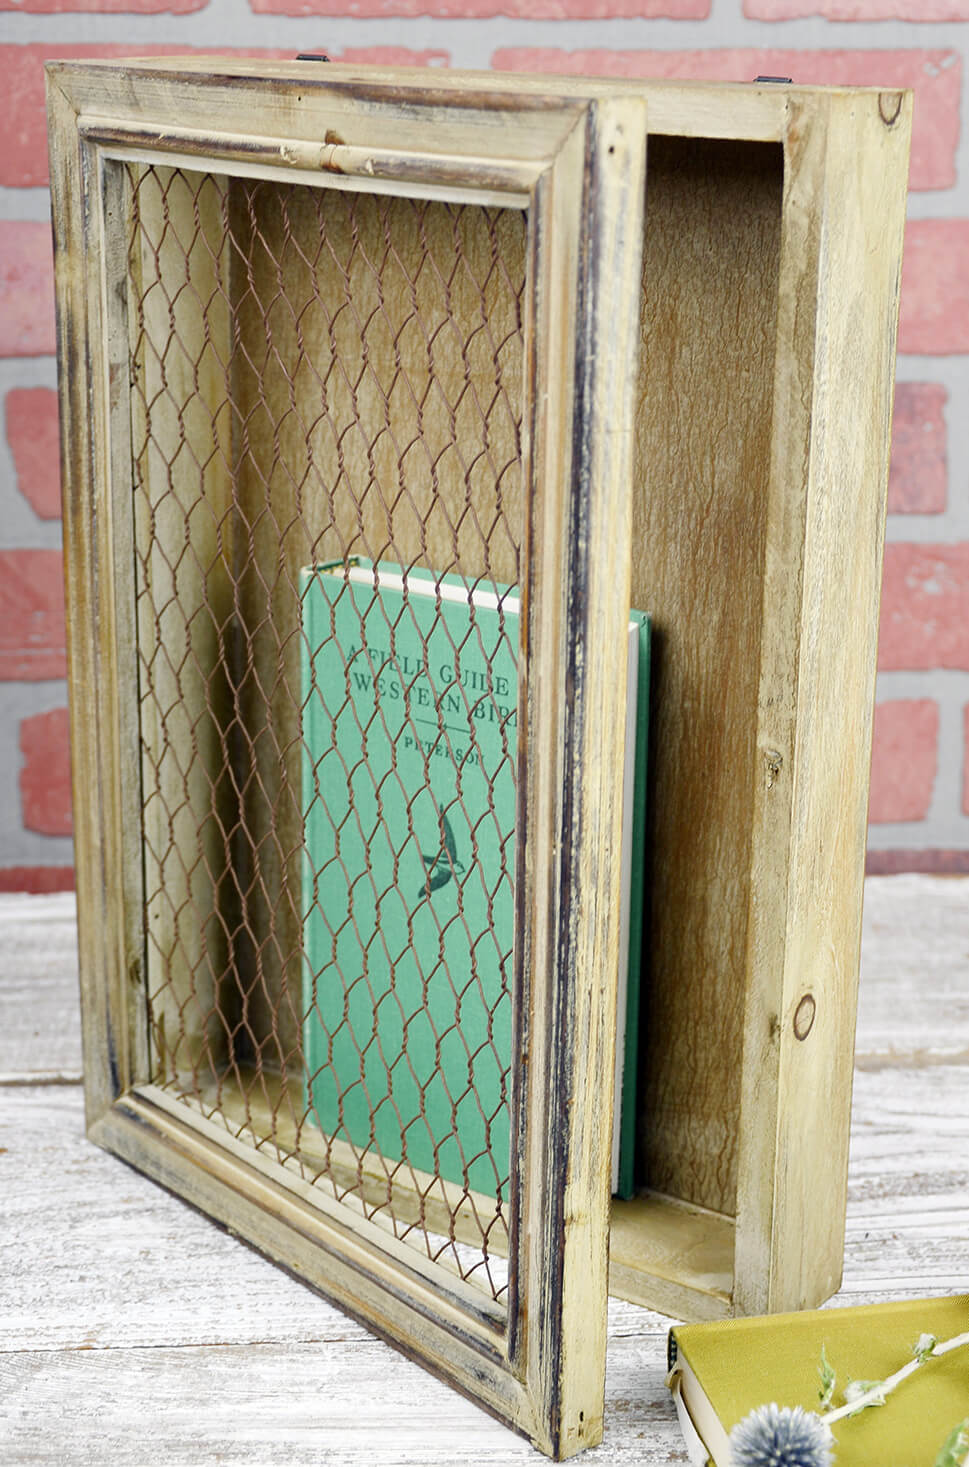 Holders Card Place Chicken Wire